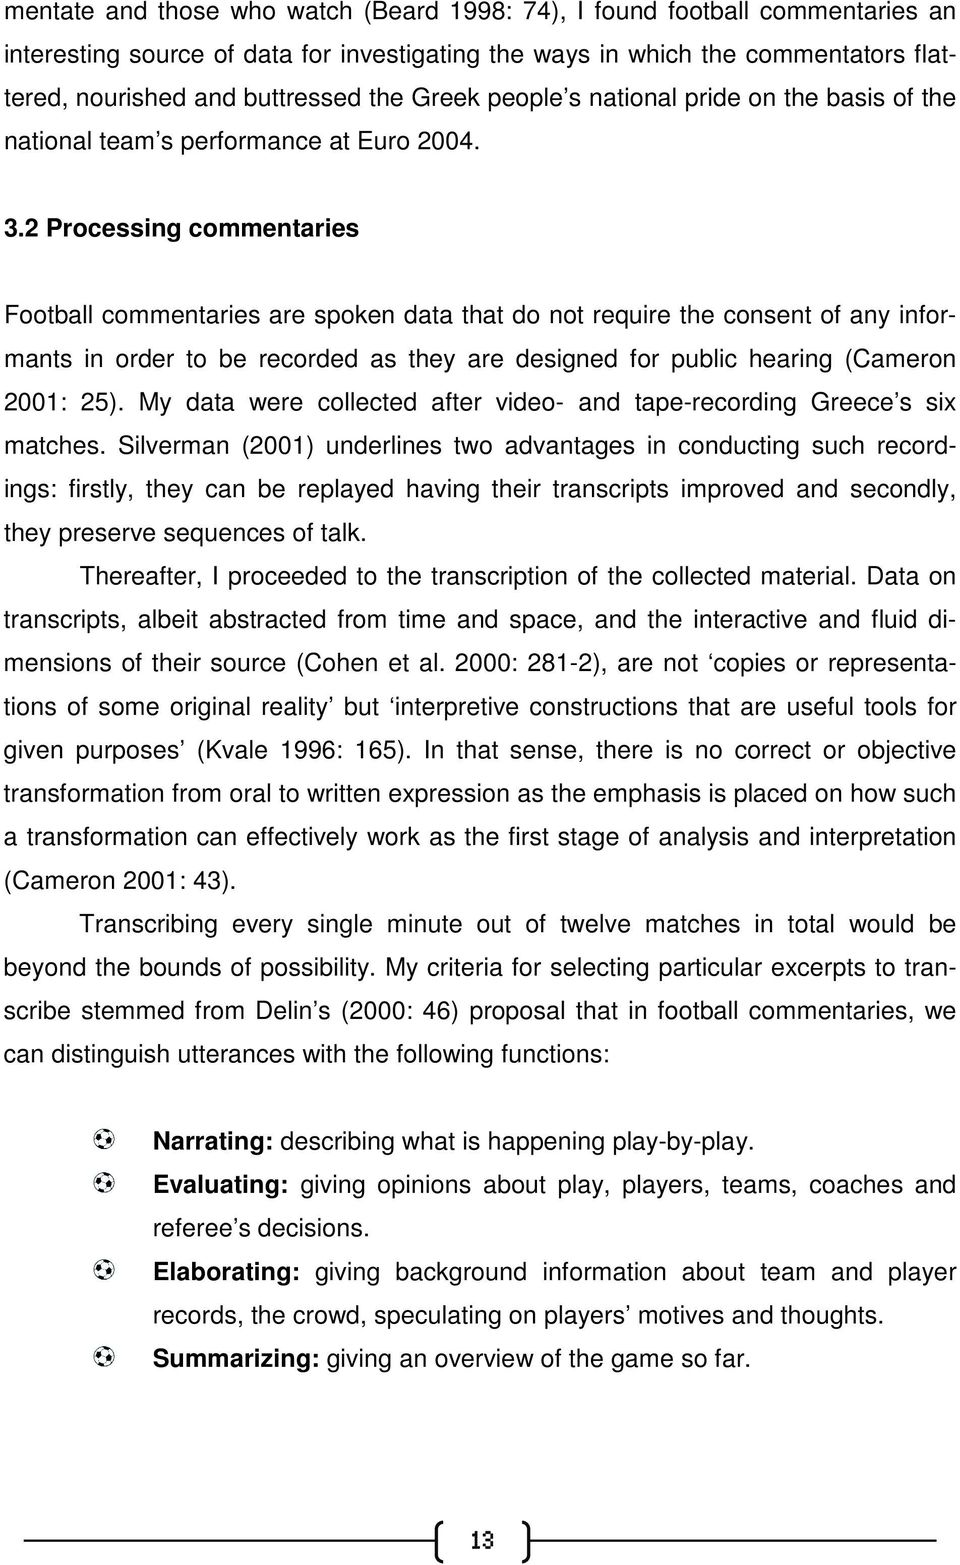 2 Processing commentaries Football commentaries are spoken data that do not require the consent of any informants in order to be recorded as they are designed for public hearing (Cameron 2001: 25).